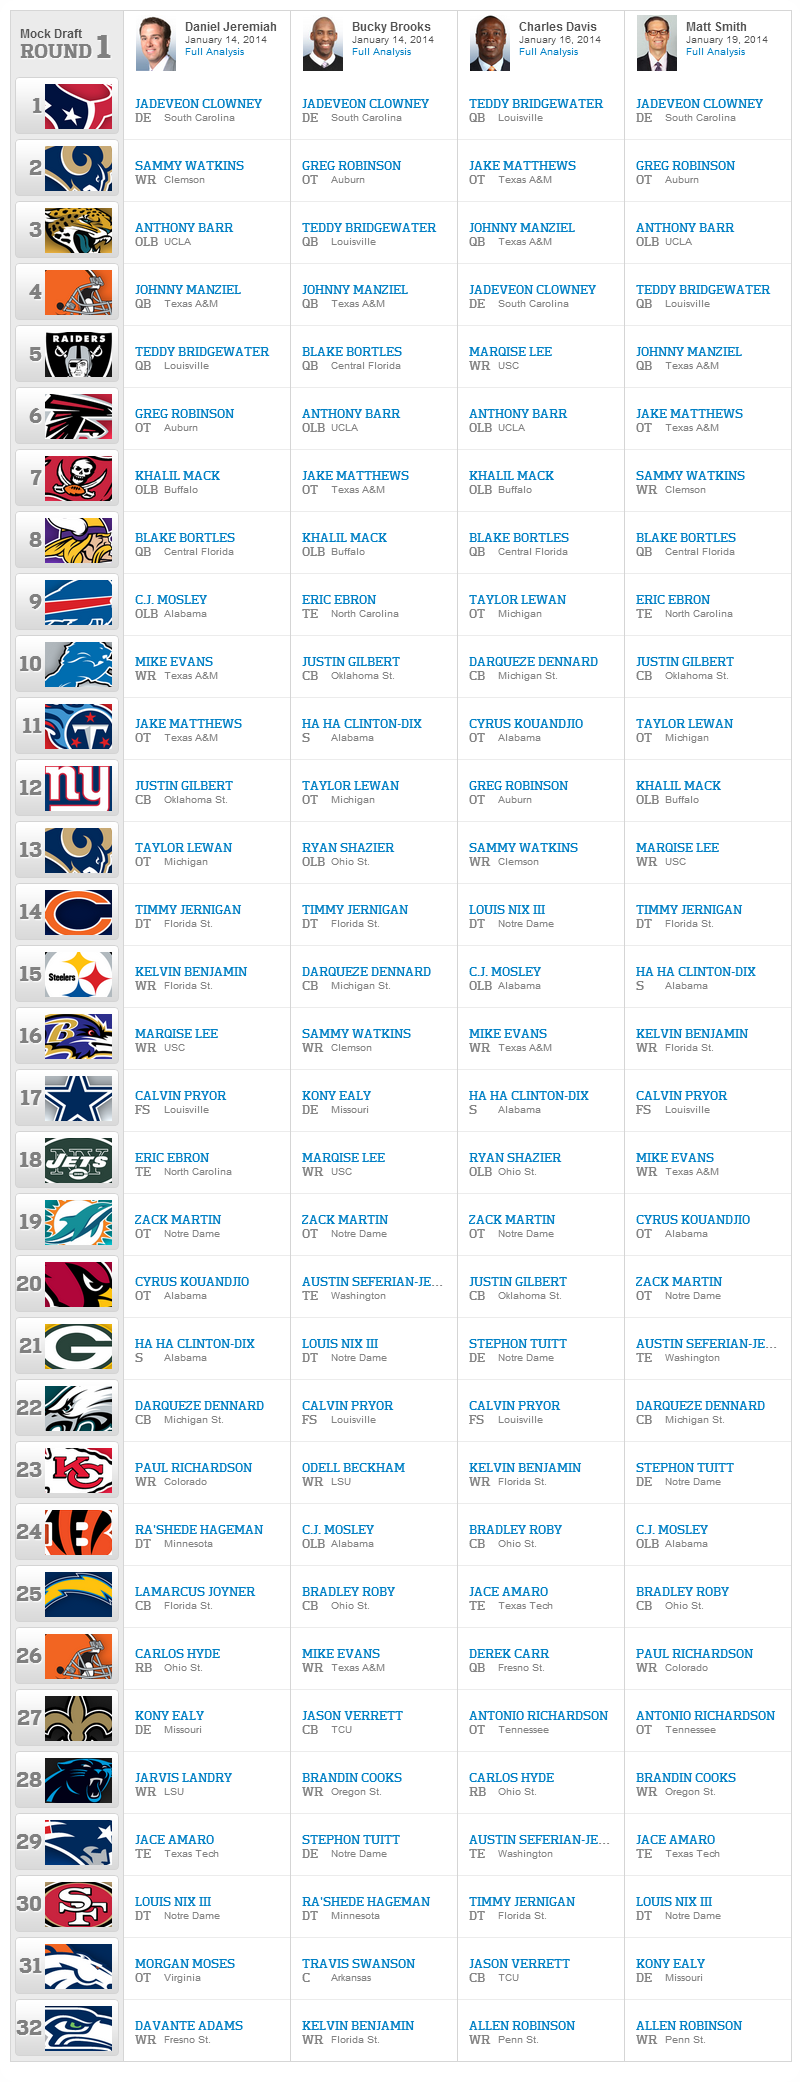 2014 NFL Mock Draft Central - ROAD TO THE 2014 NFL DRAFT 2014 - Dallas